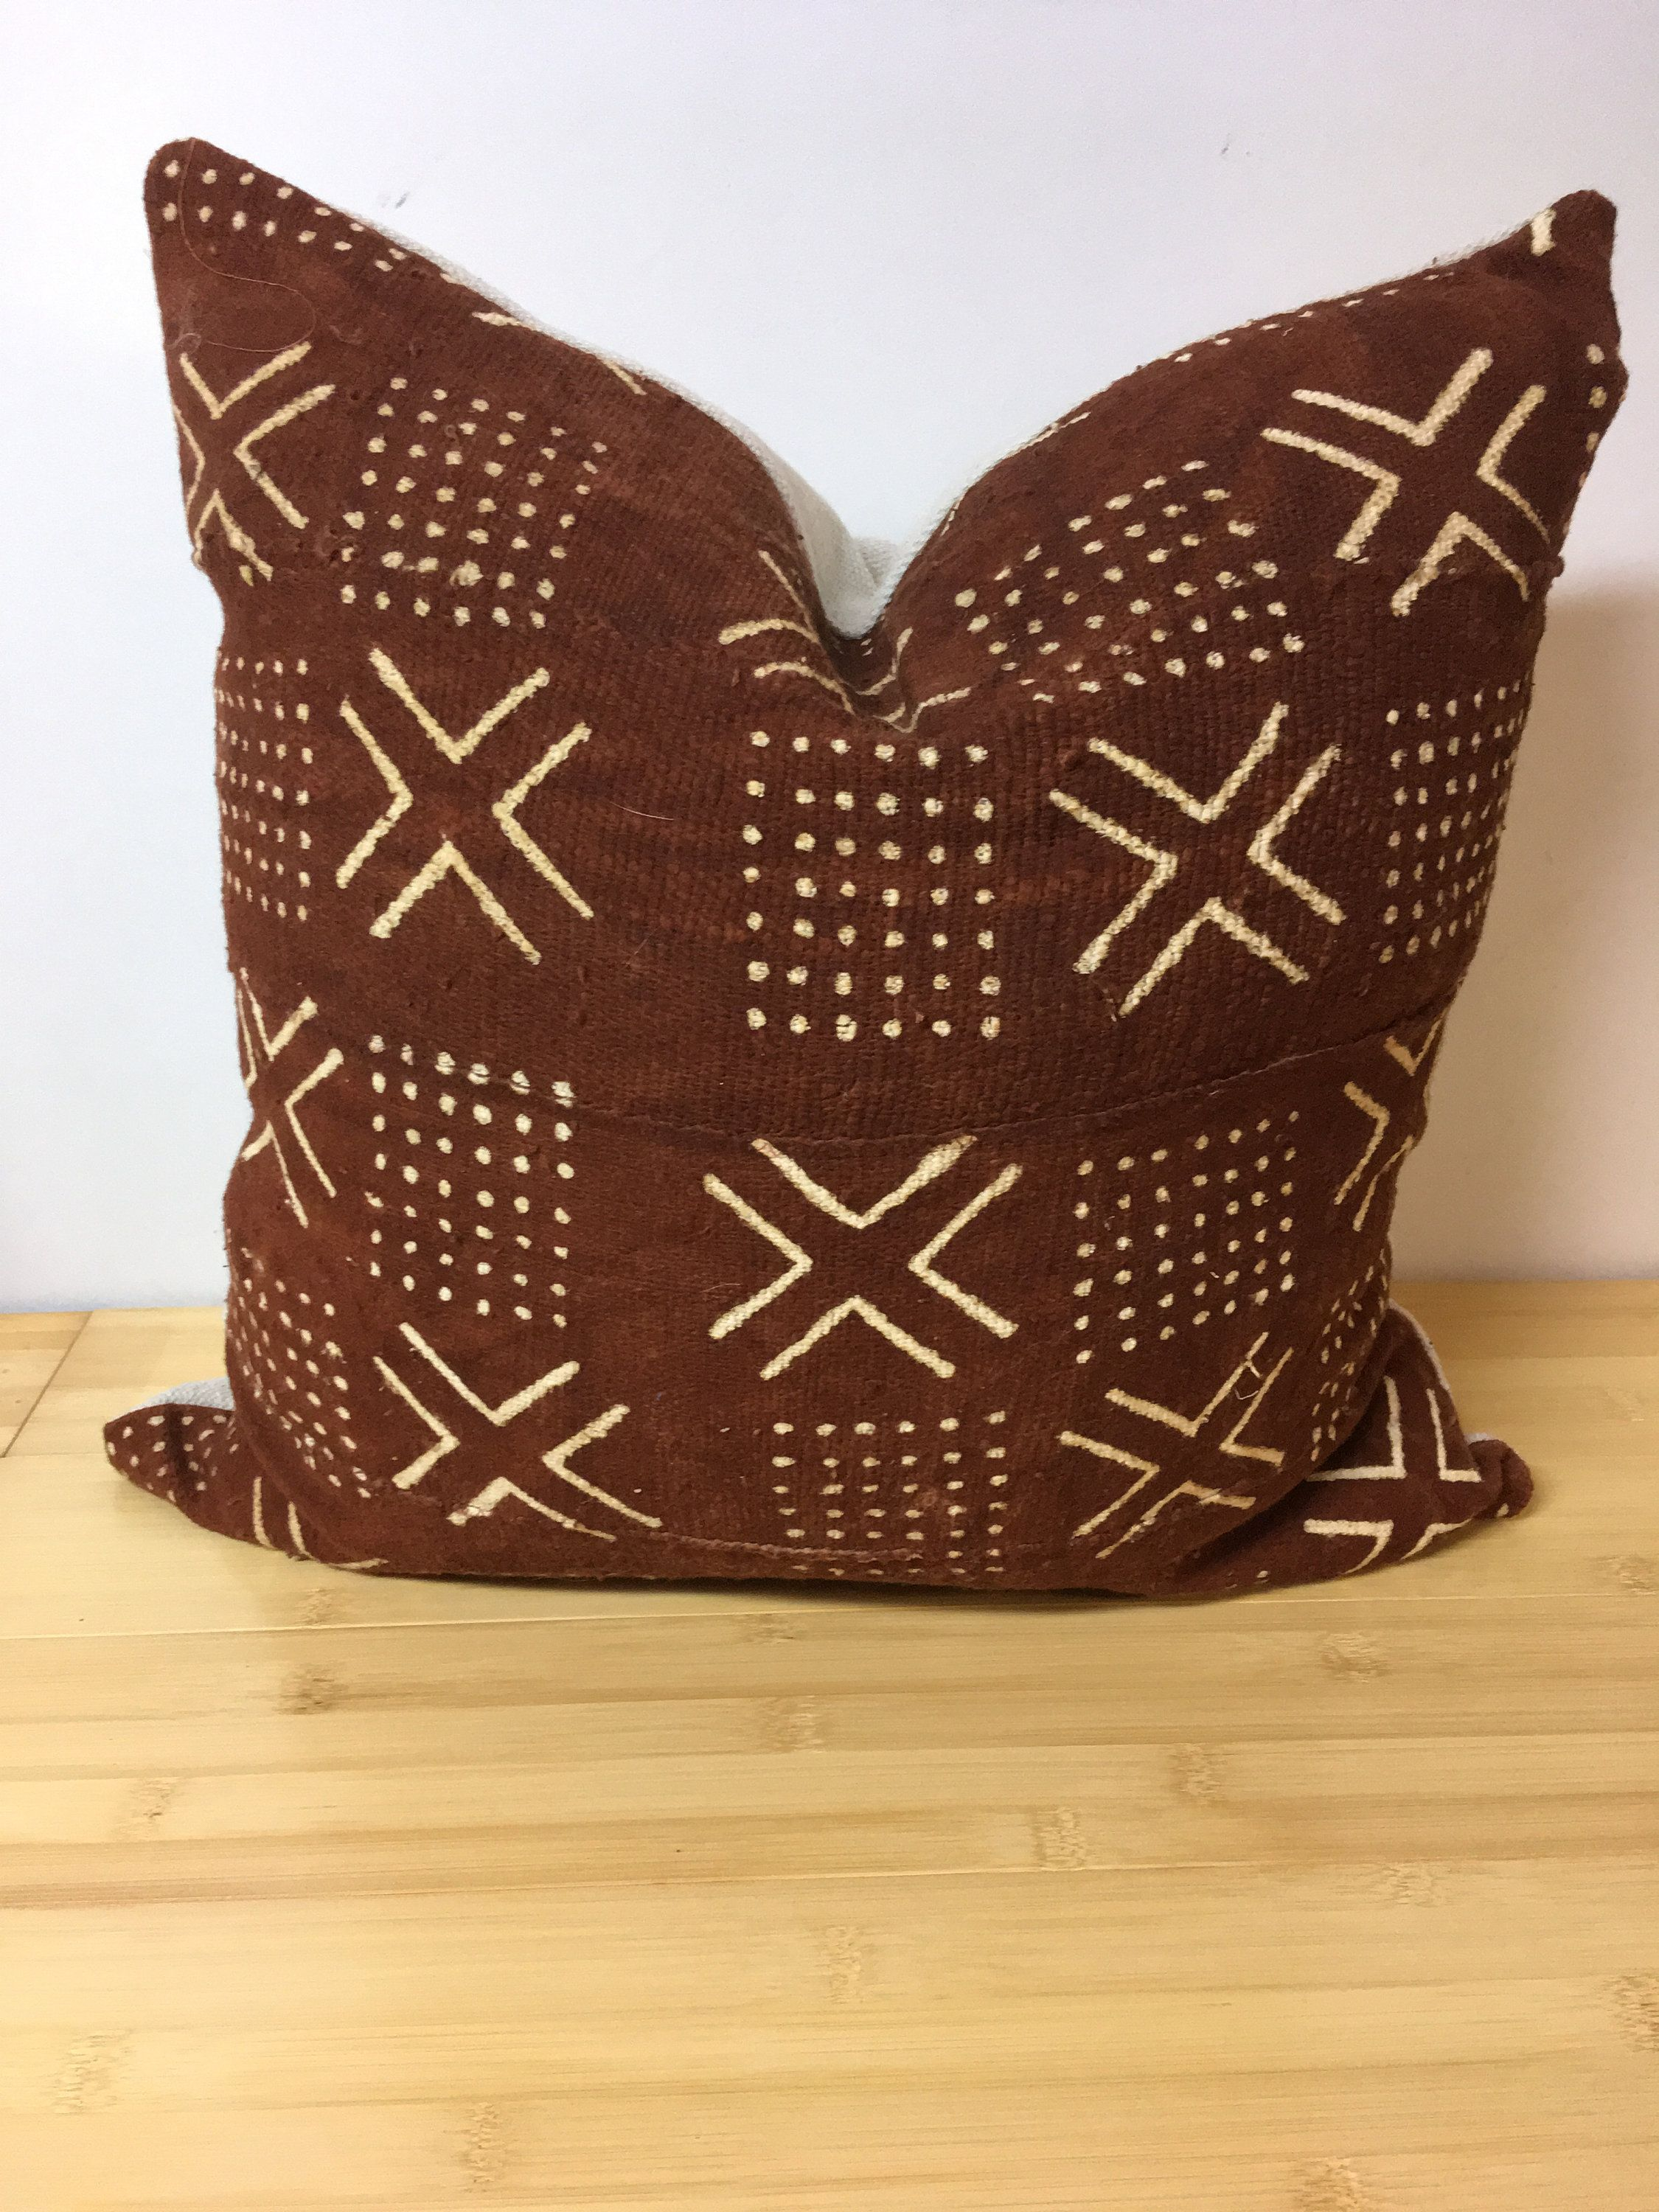 African Mudcloth Pillow Cover Authentic African Mud Cloth Orange And Cream Mali Mud Cloth Decorati In 2020 African Mud Cloth Mudcloth Pillow African Mudcloth Pillow